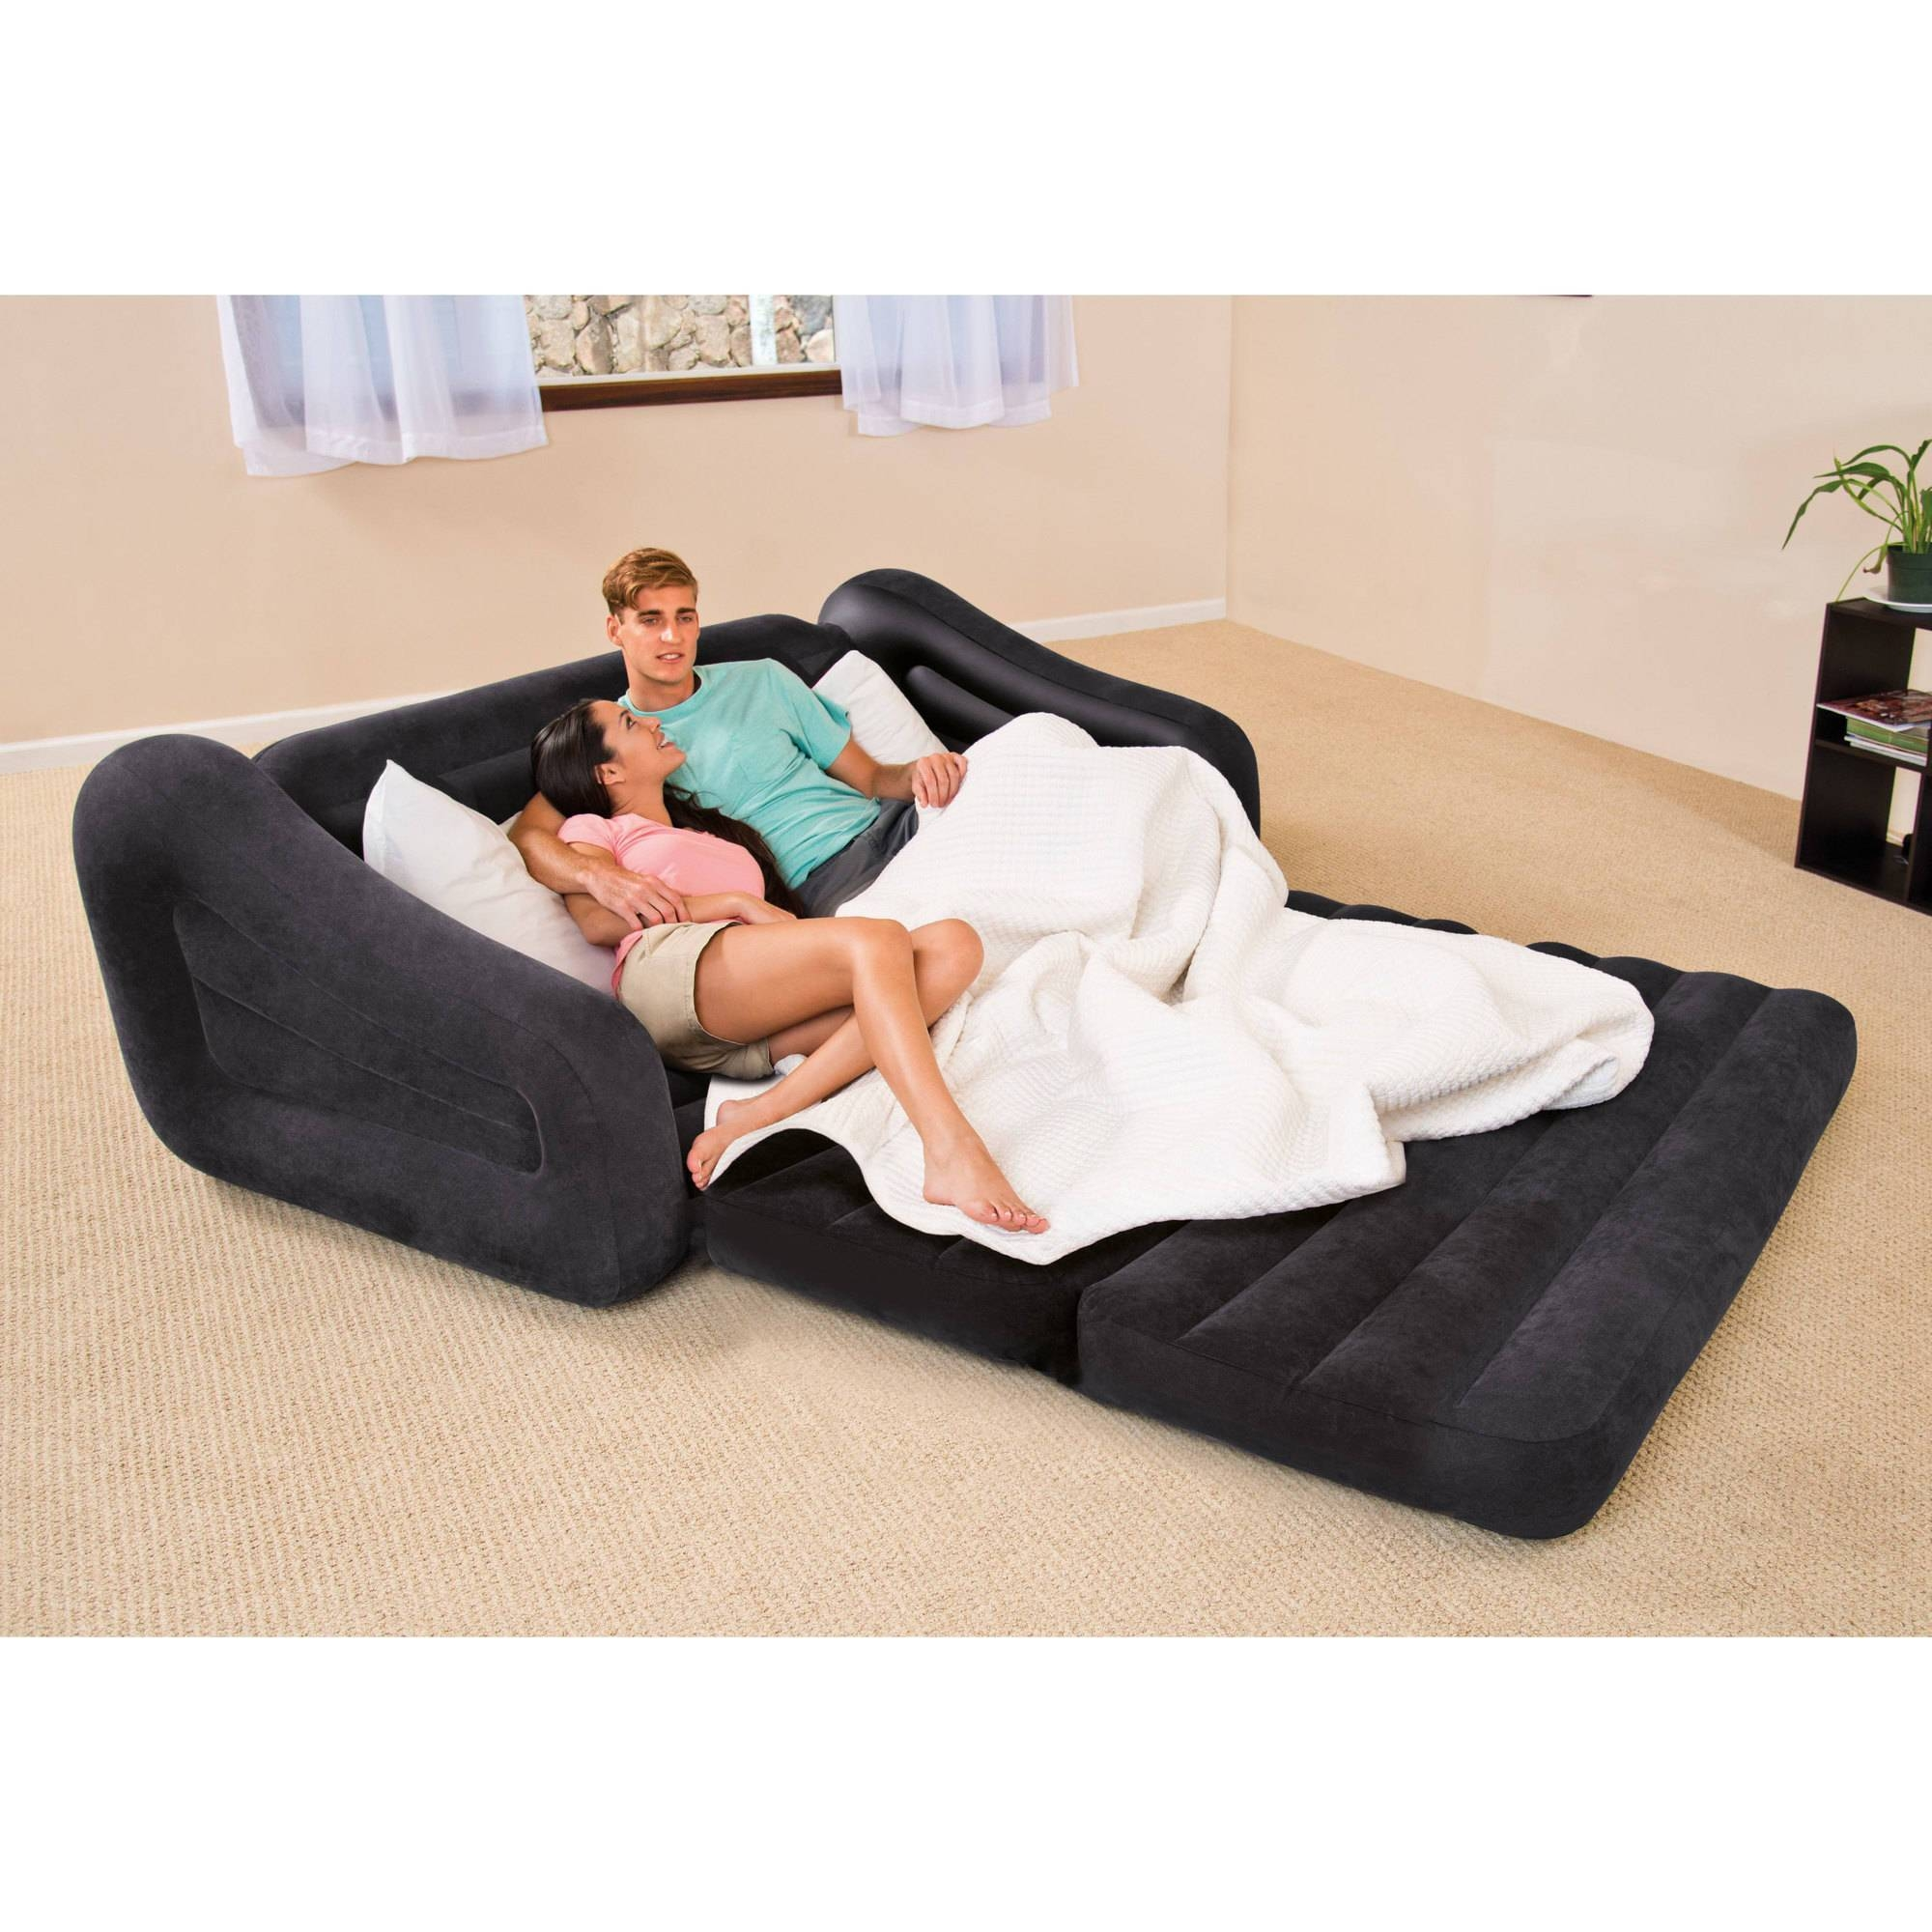 Intex Queen Inflatable Pull Out Sofa Bed - Walmart within Pull Out Queen Size Bed Sofas (Image 13 of 30)